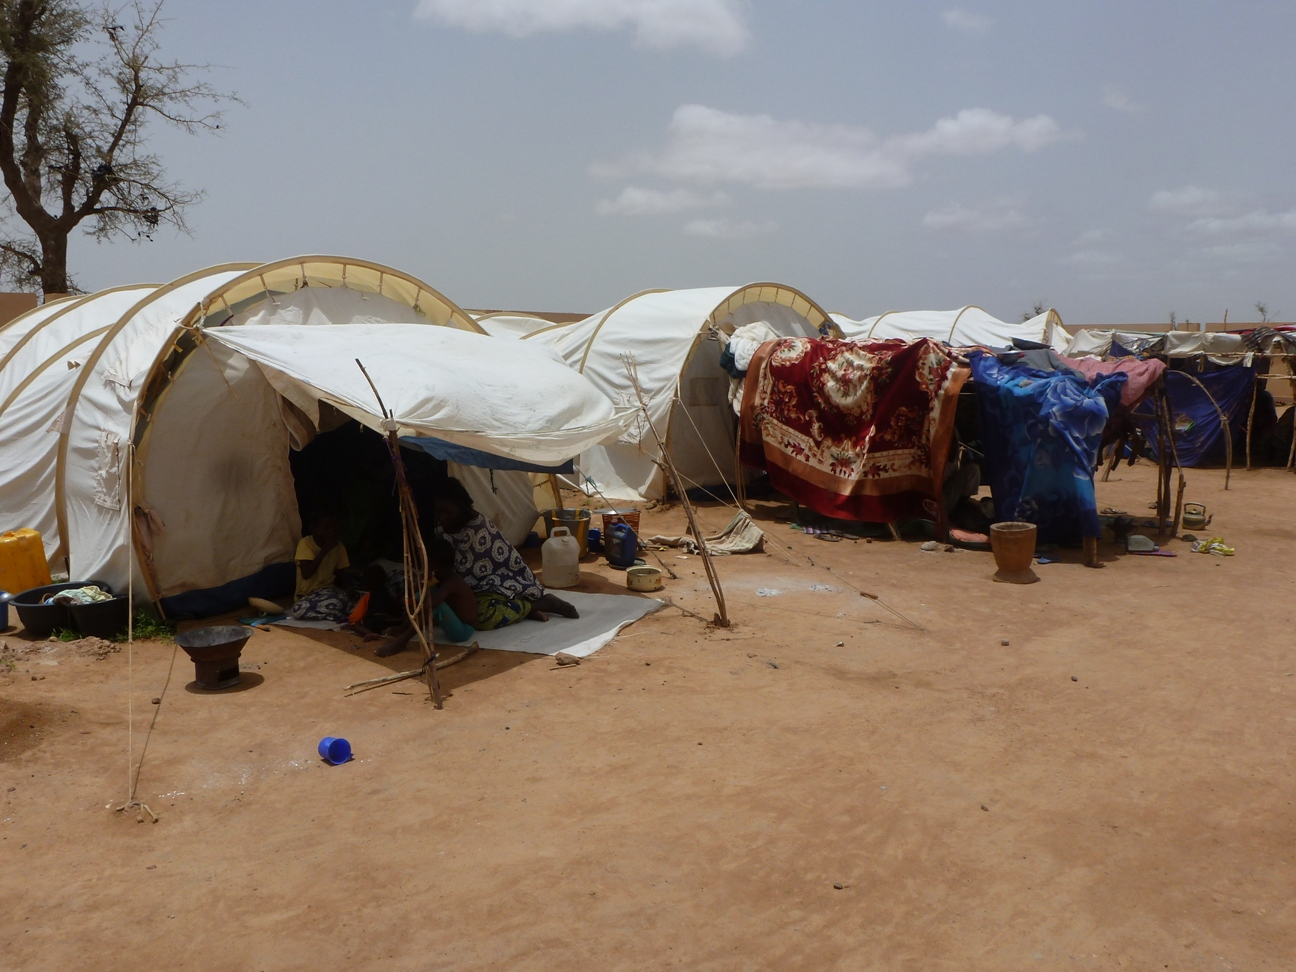 Site outside of Sevare in Mopti region, where IDPs were living following the takeover of the north by Islamist groups in April 2012. Some 5,000 IDPs were living in an abandoned house and some spilled over into these ICRC-provided tents